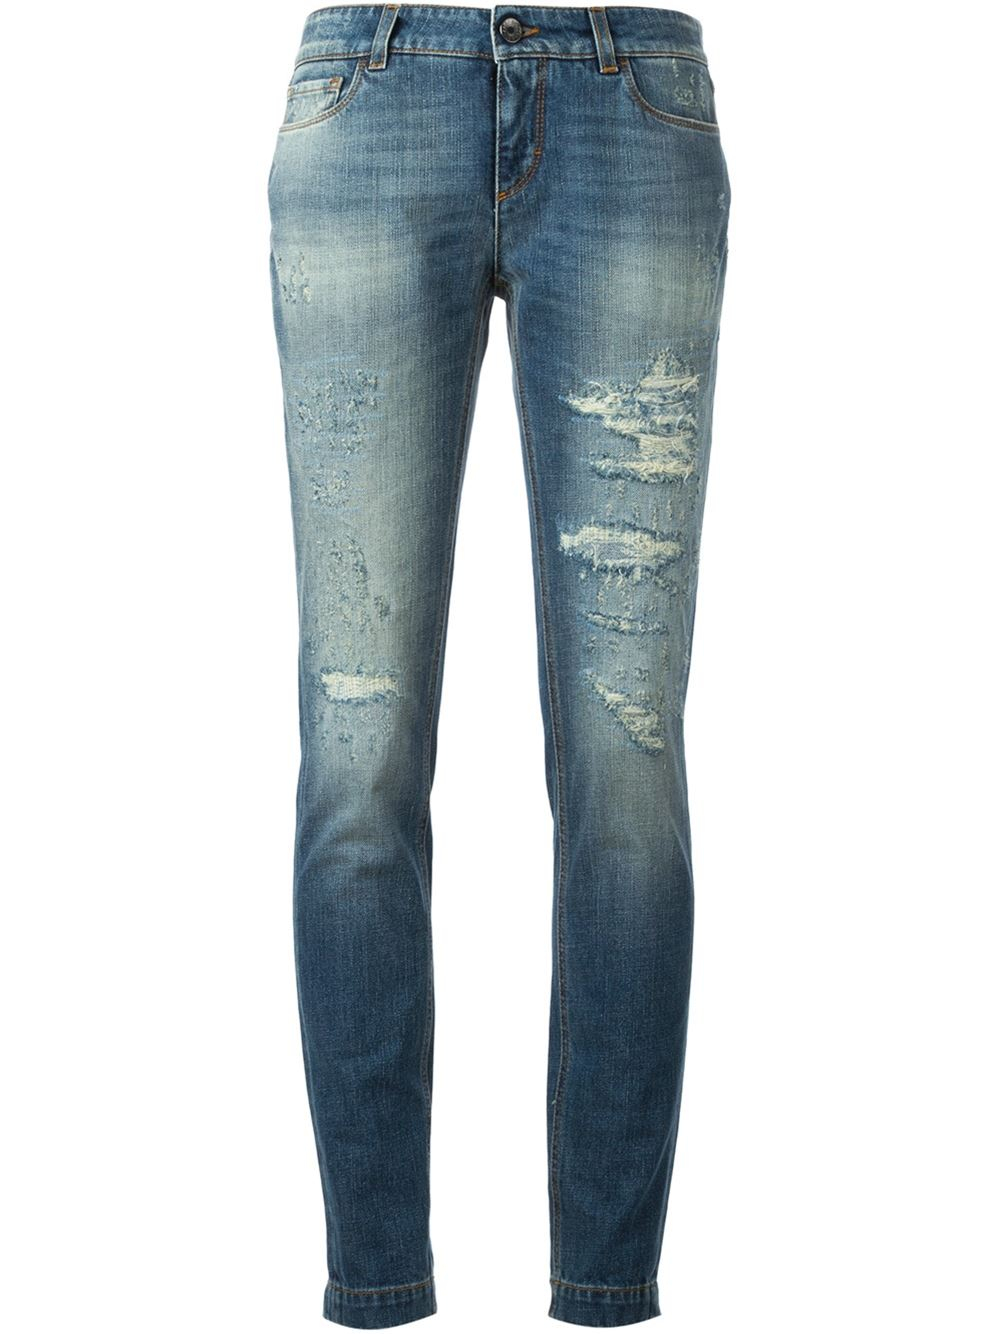 dolce gabbana ripped skinny jeans in blue lyst. Black Bedroom Furniture Sets. Home Design Ideas